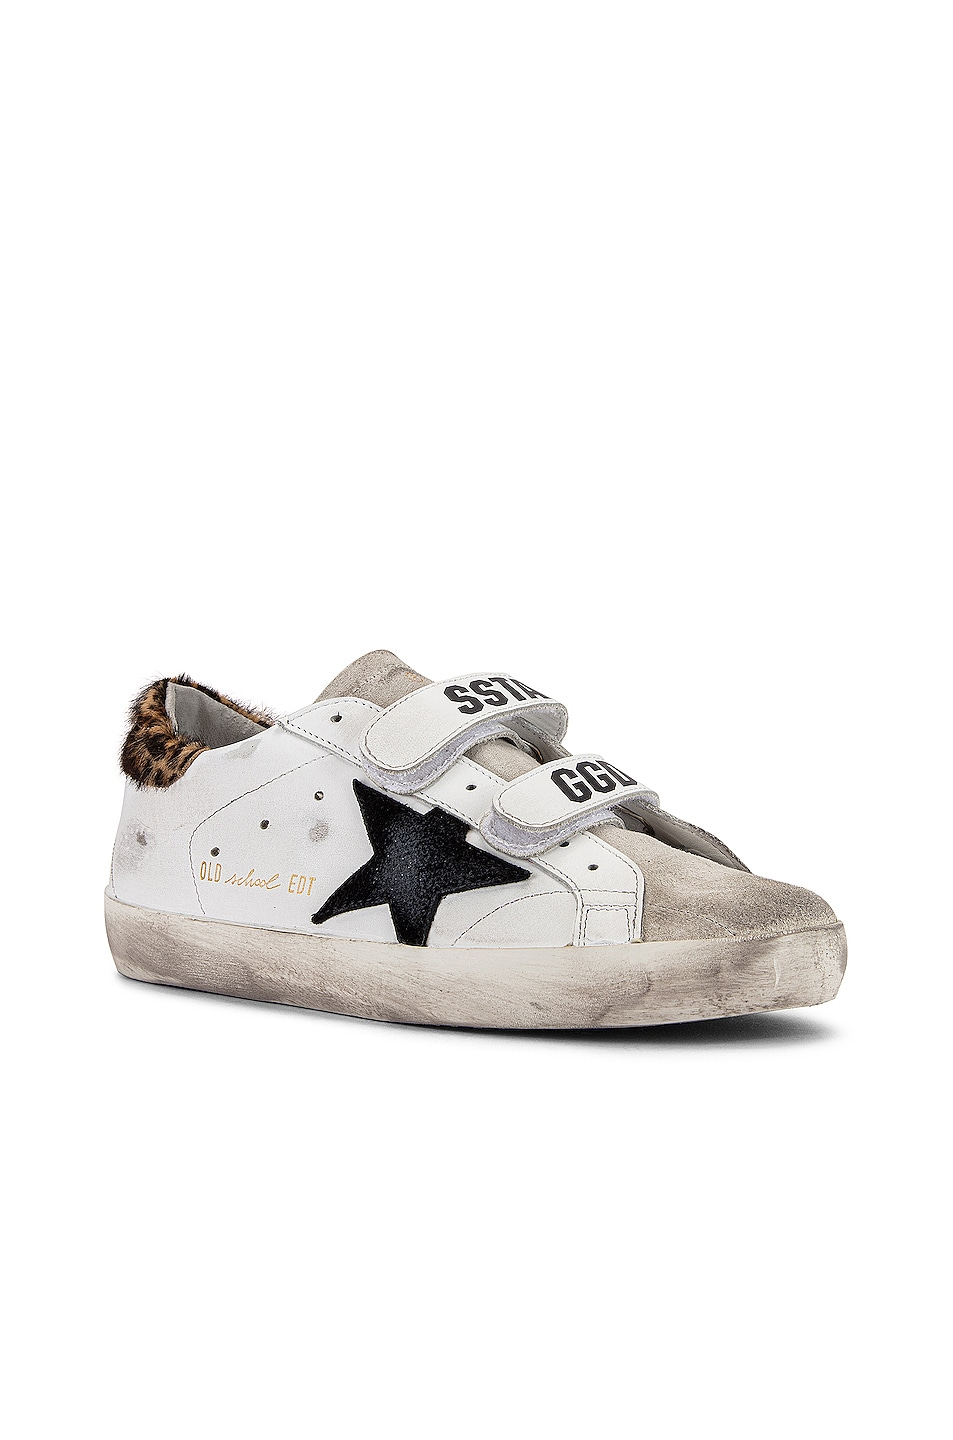 Image 2 of Golden Goose Old School Sneakers in White Leather & Leopard Pony